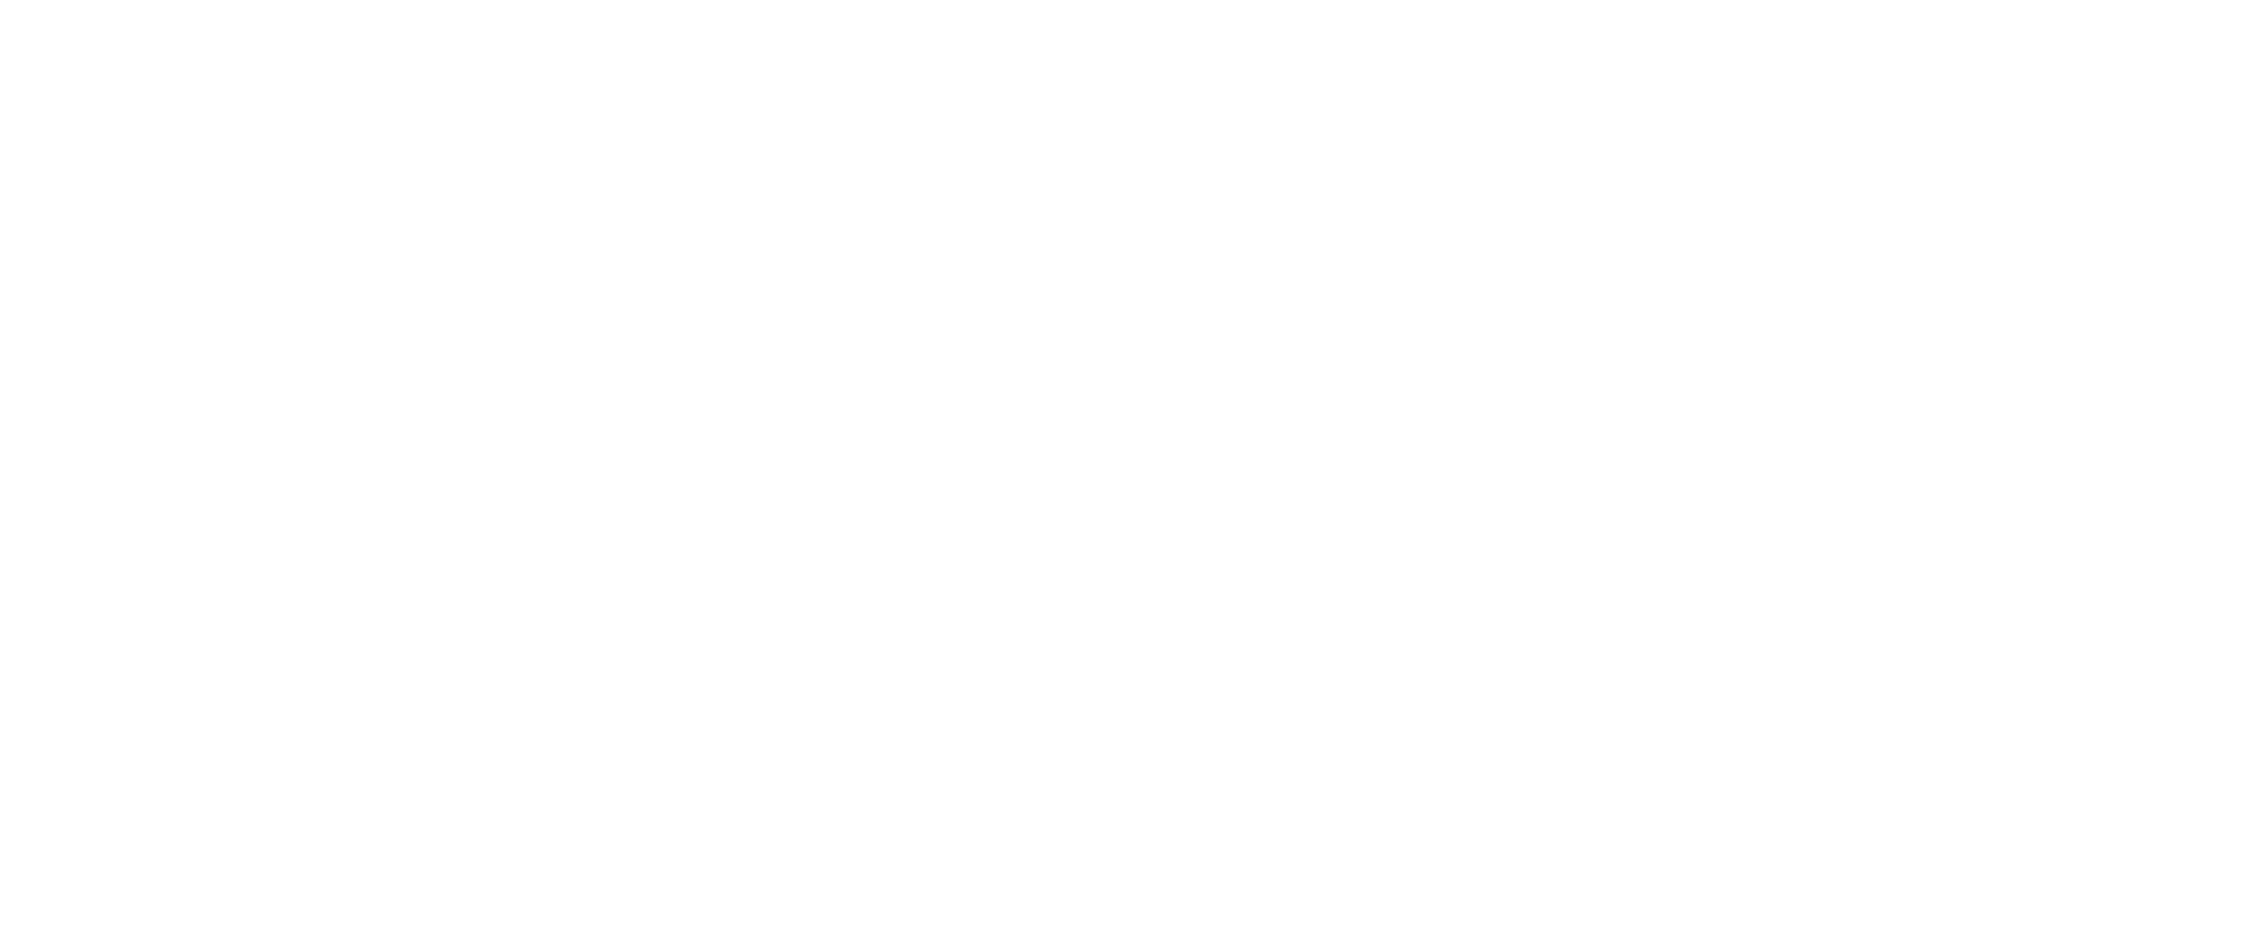 vancouvercourier.png